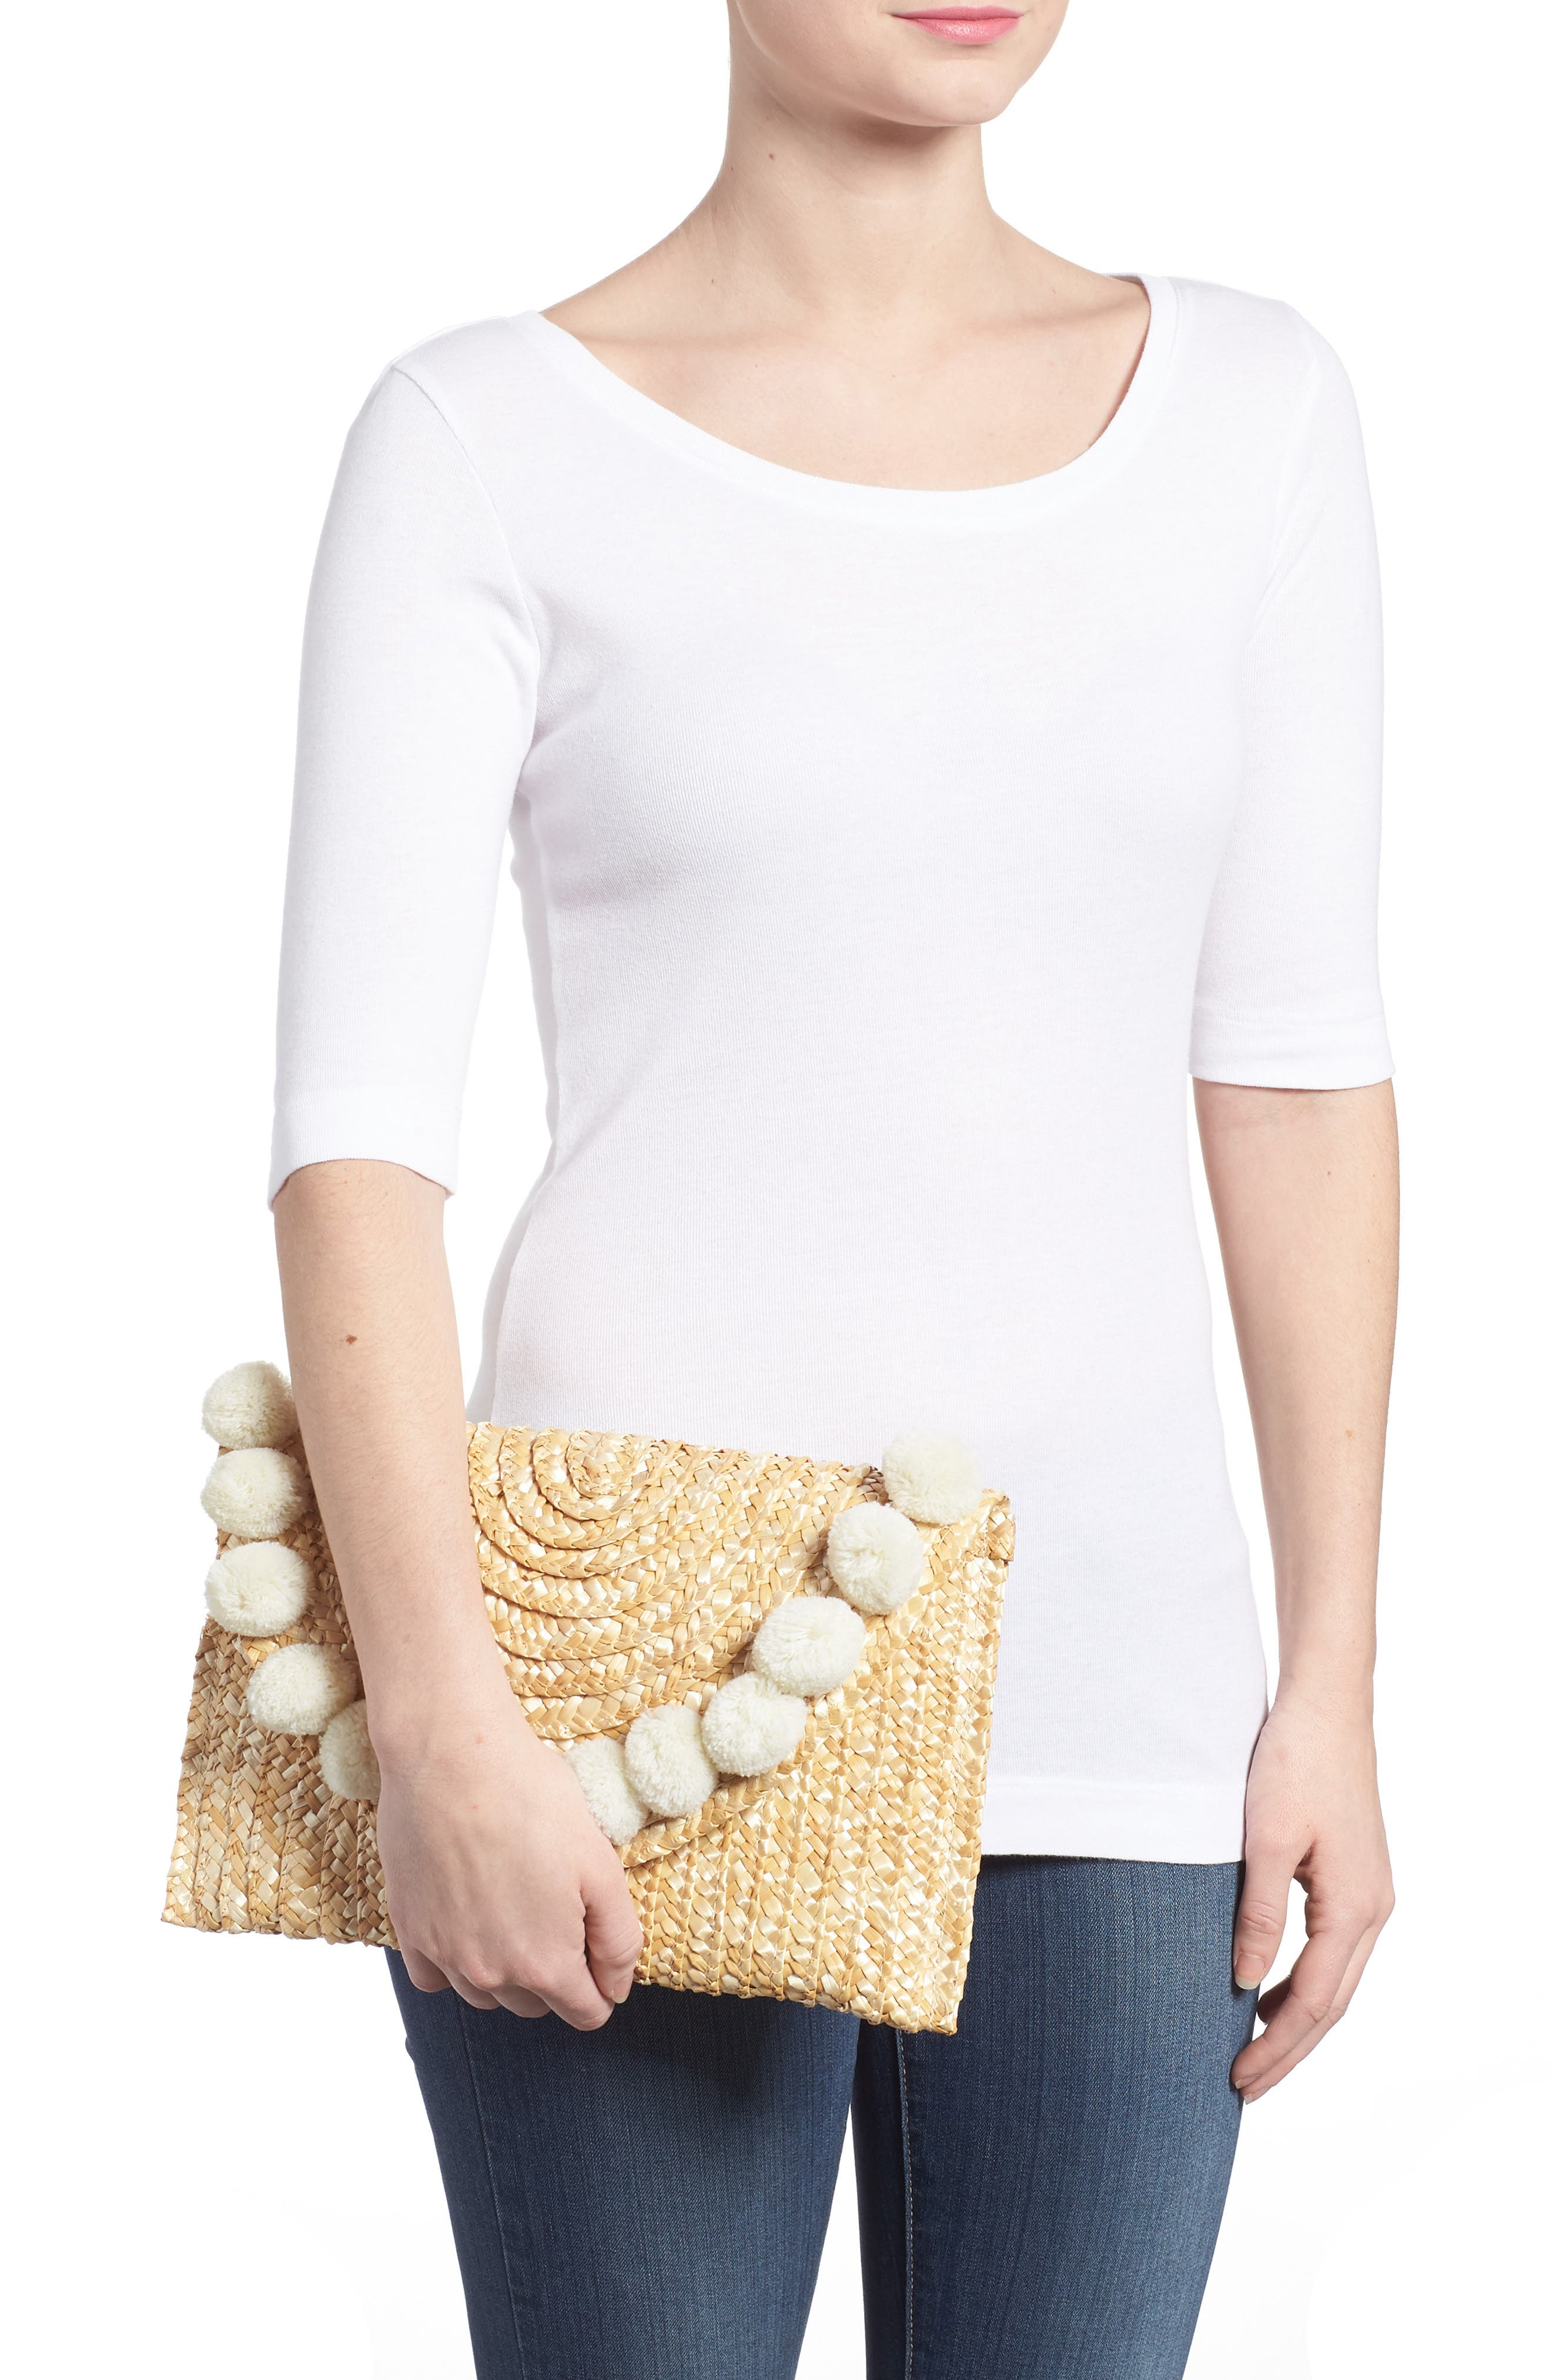 Fortuna Straw Clutch,                             Alternate thumbnail 2, color,                             256